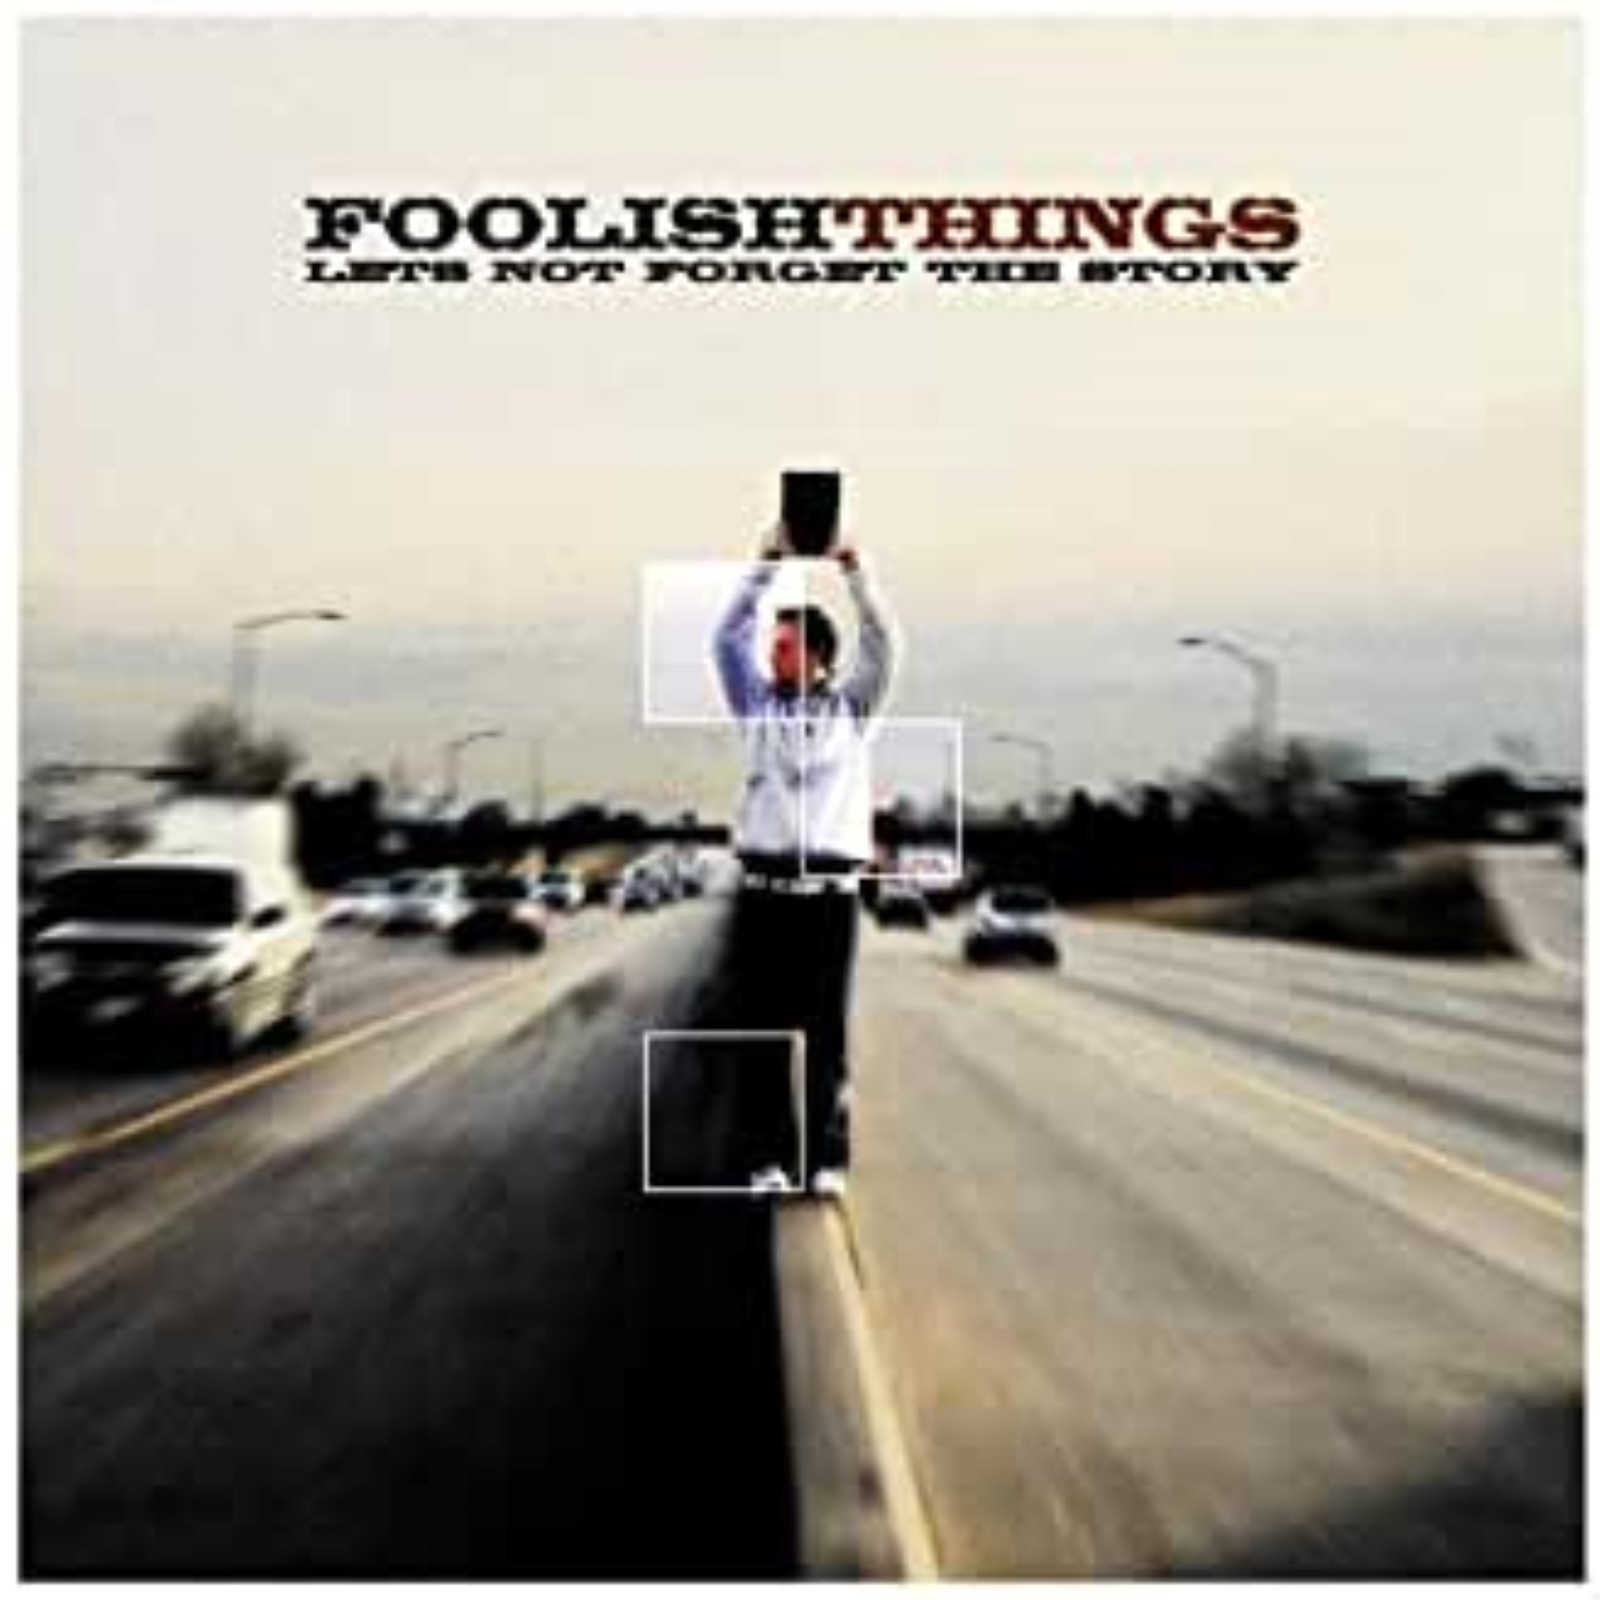 Let's Not Forget the Story by Foolish Things Cd